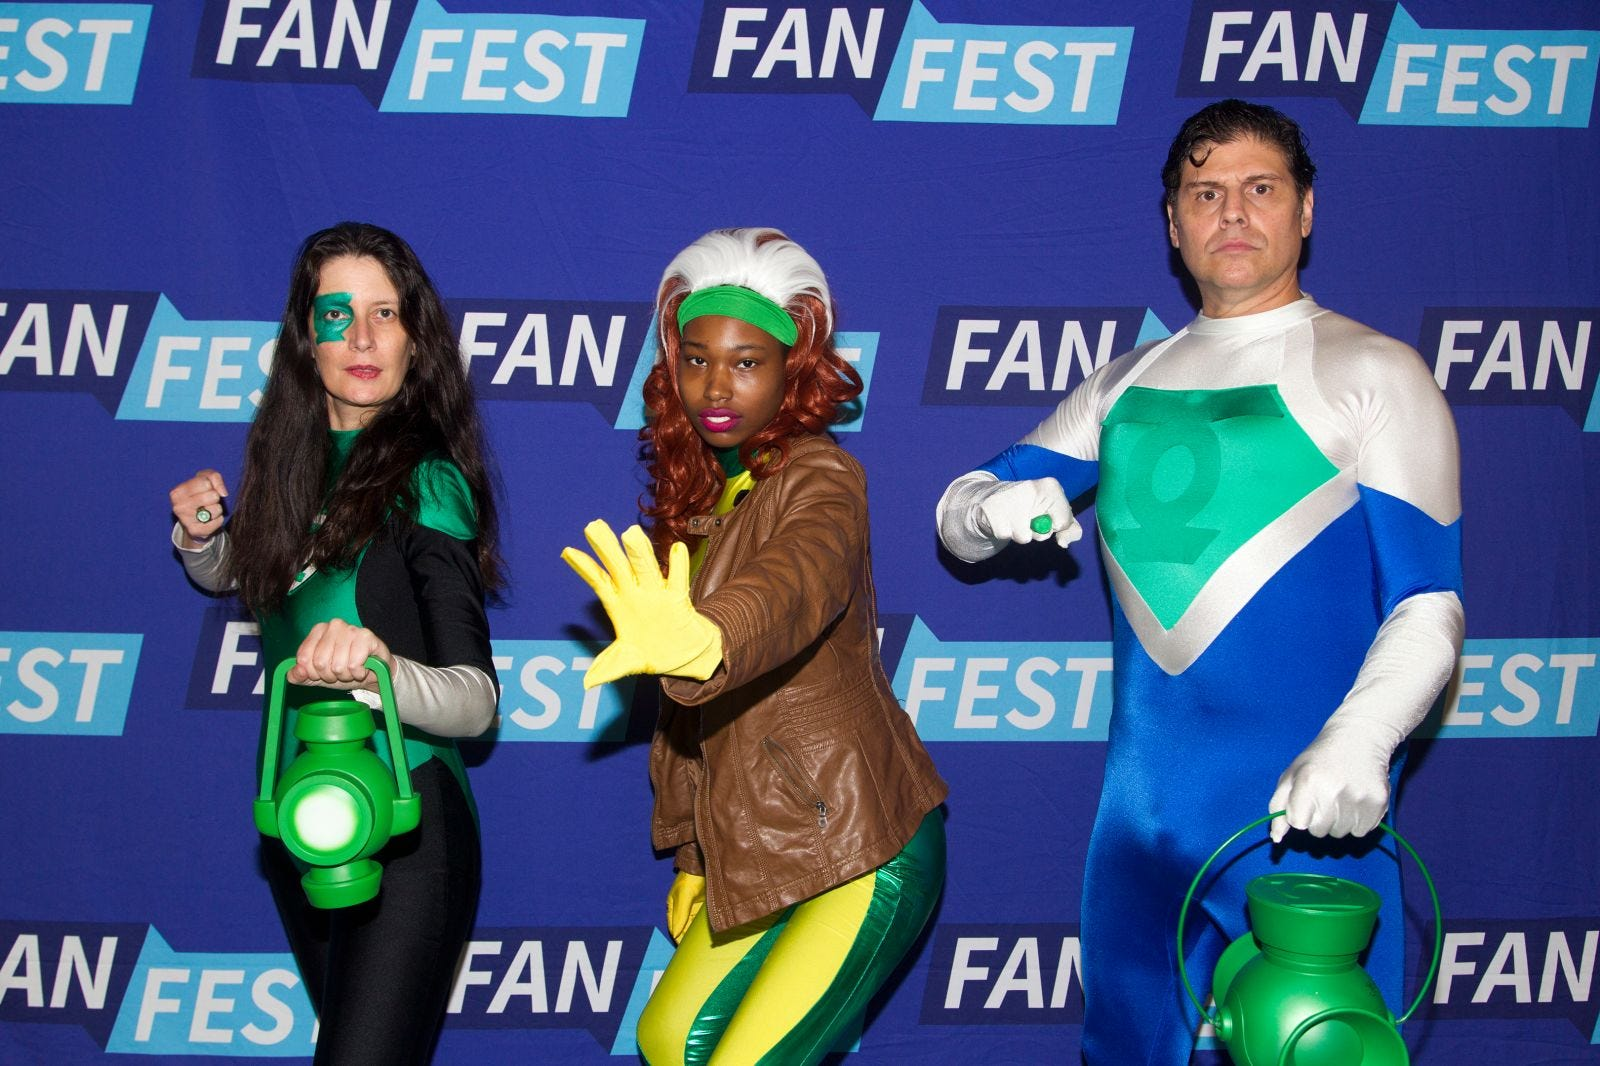 Shelly, Aaliyah, Justin. The 2018 Heroes and Villains Fan Fest took place at the New Jersey Convention & Expo Center. 09/09/2018